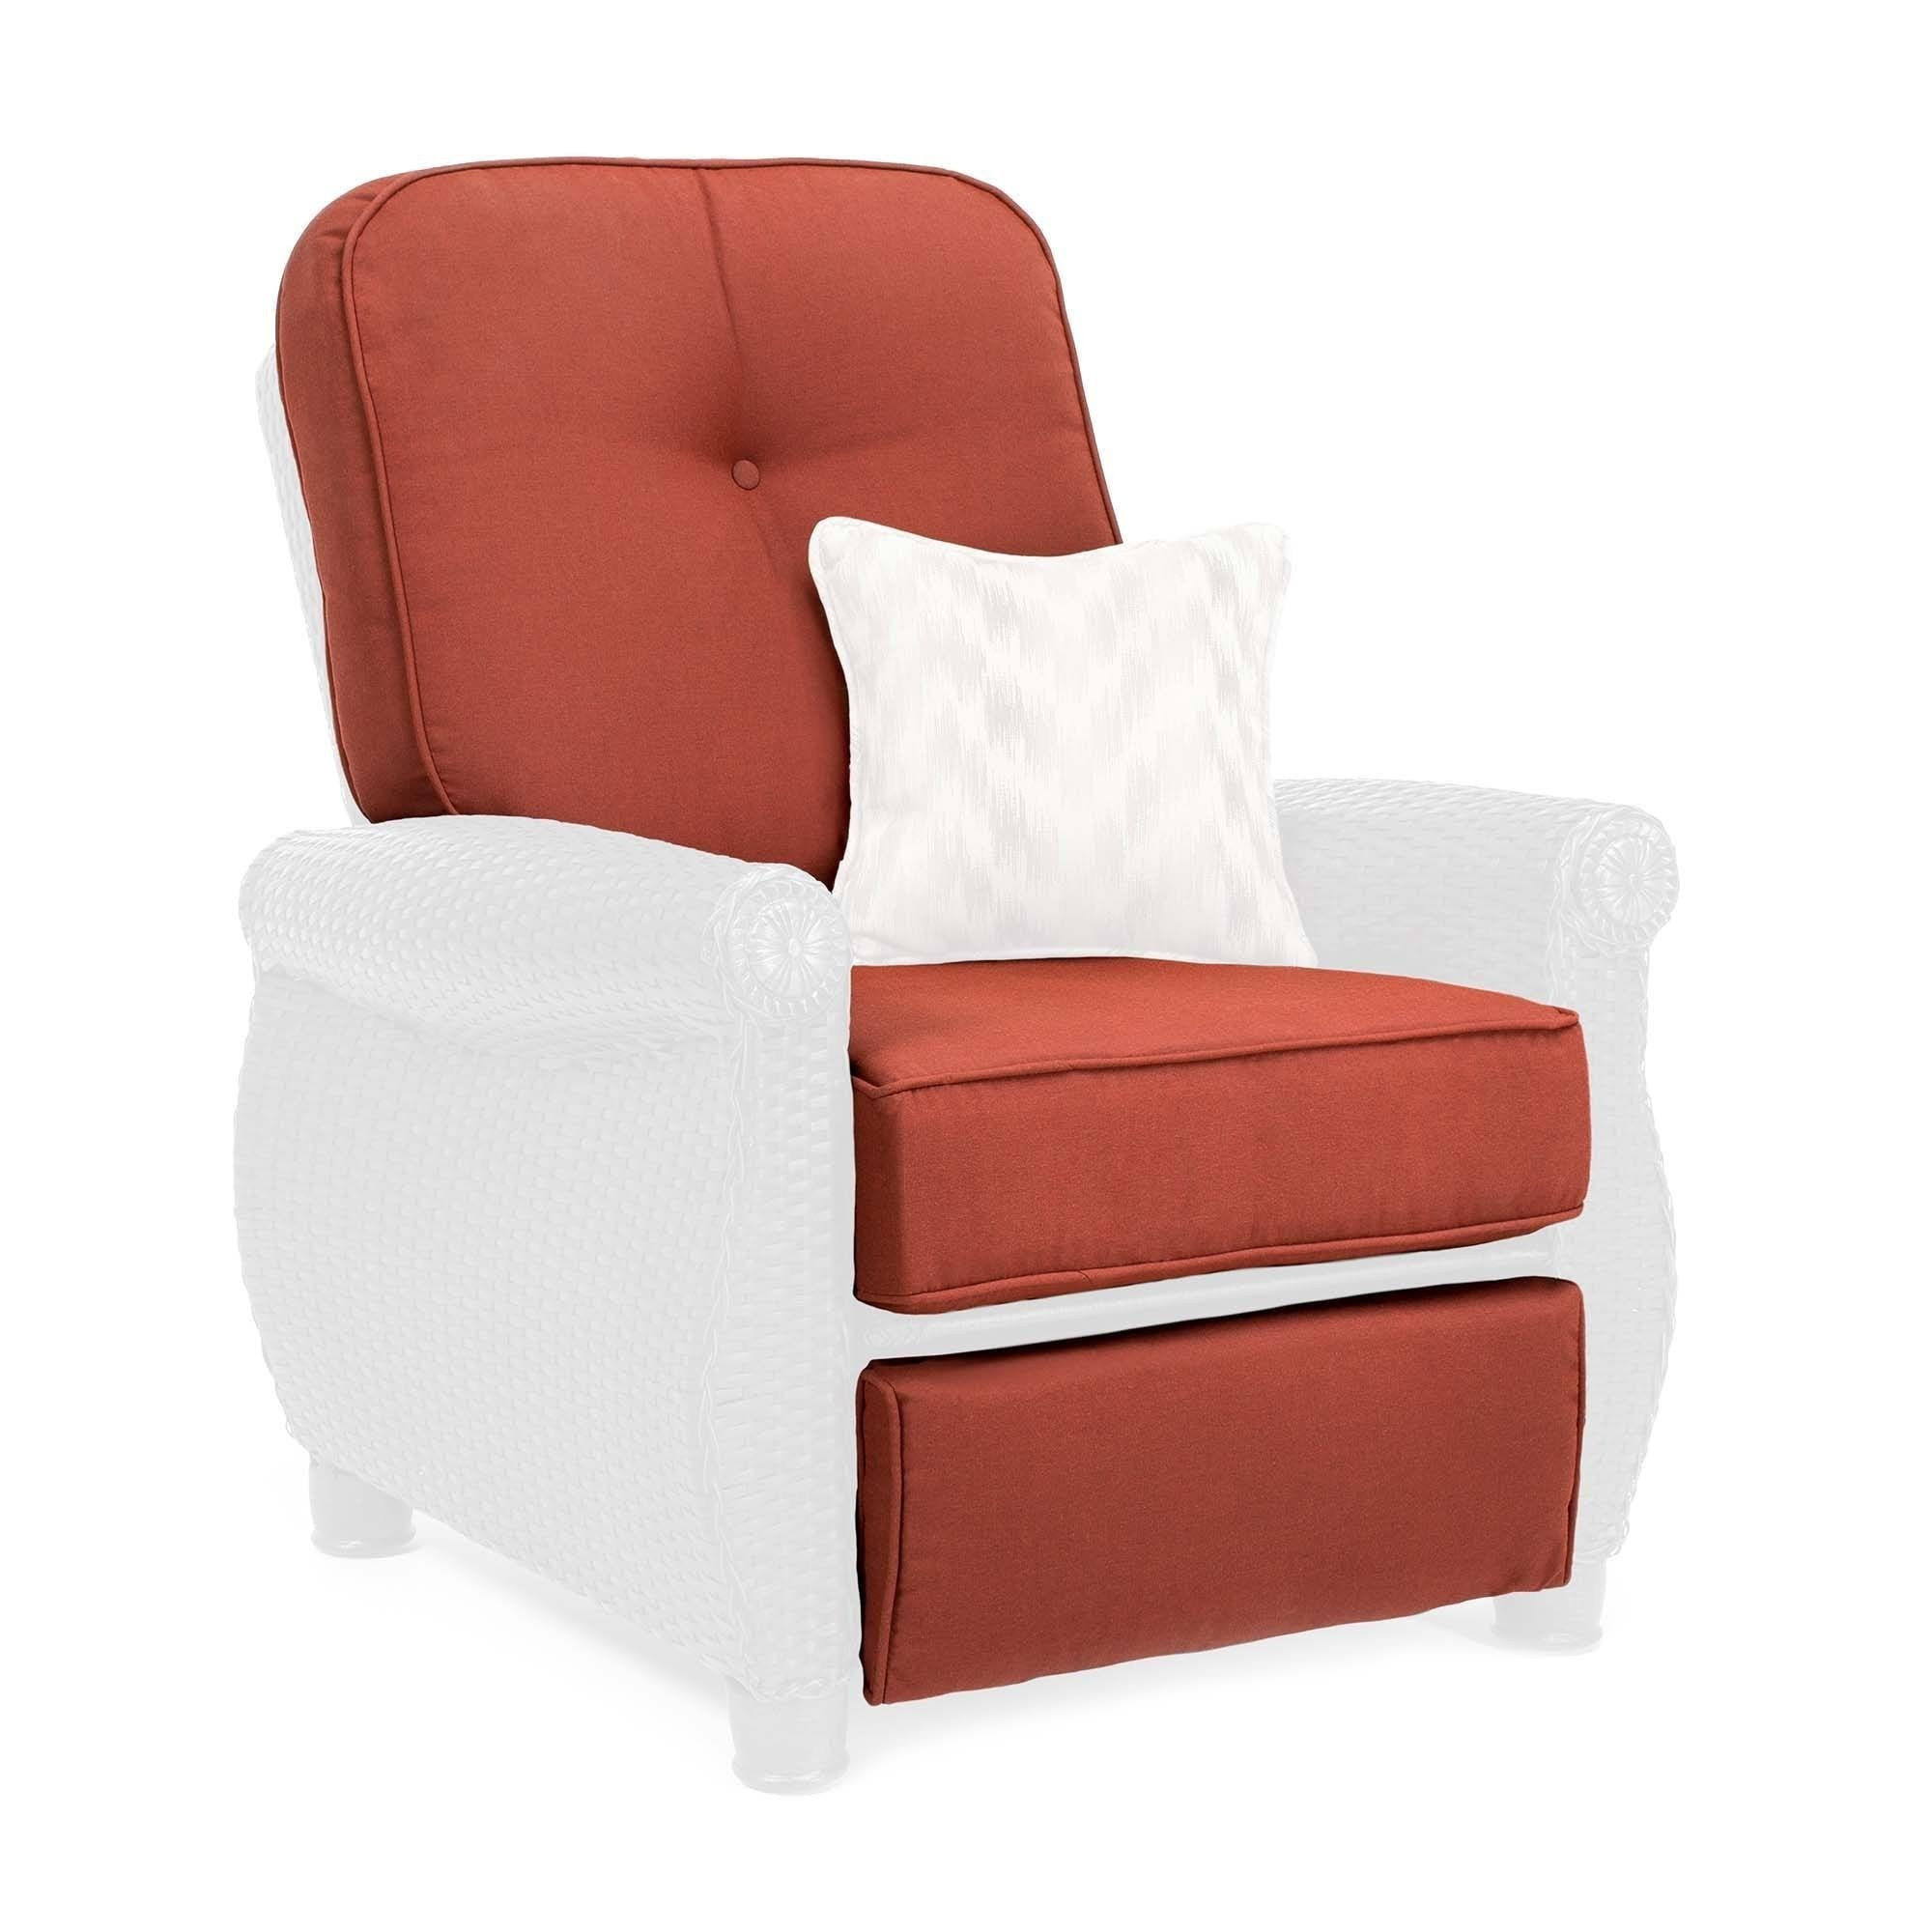 replacement cushions recliner replacement cushion set - Outdoor Replacement Cushions